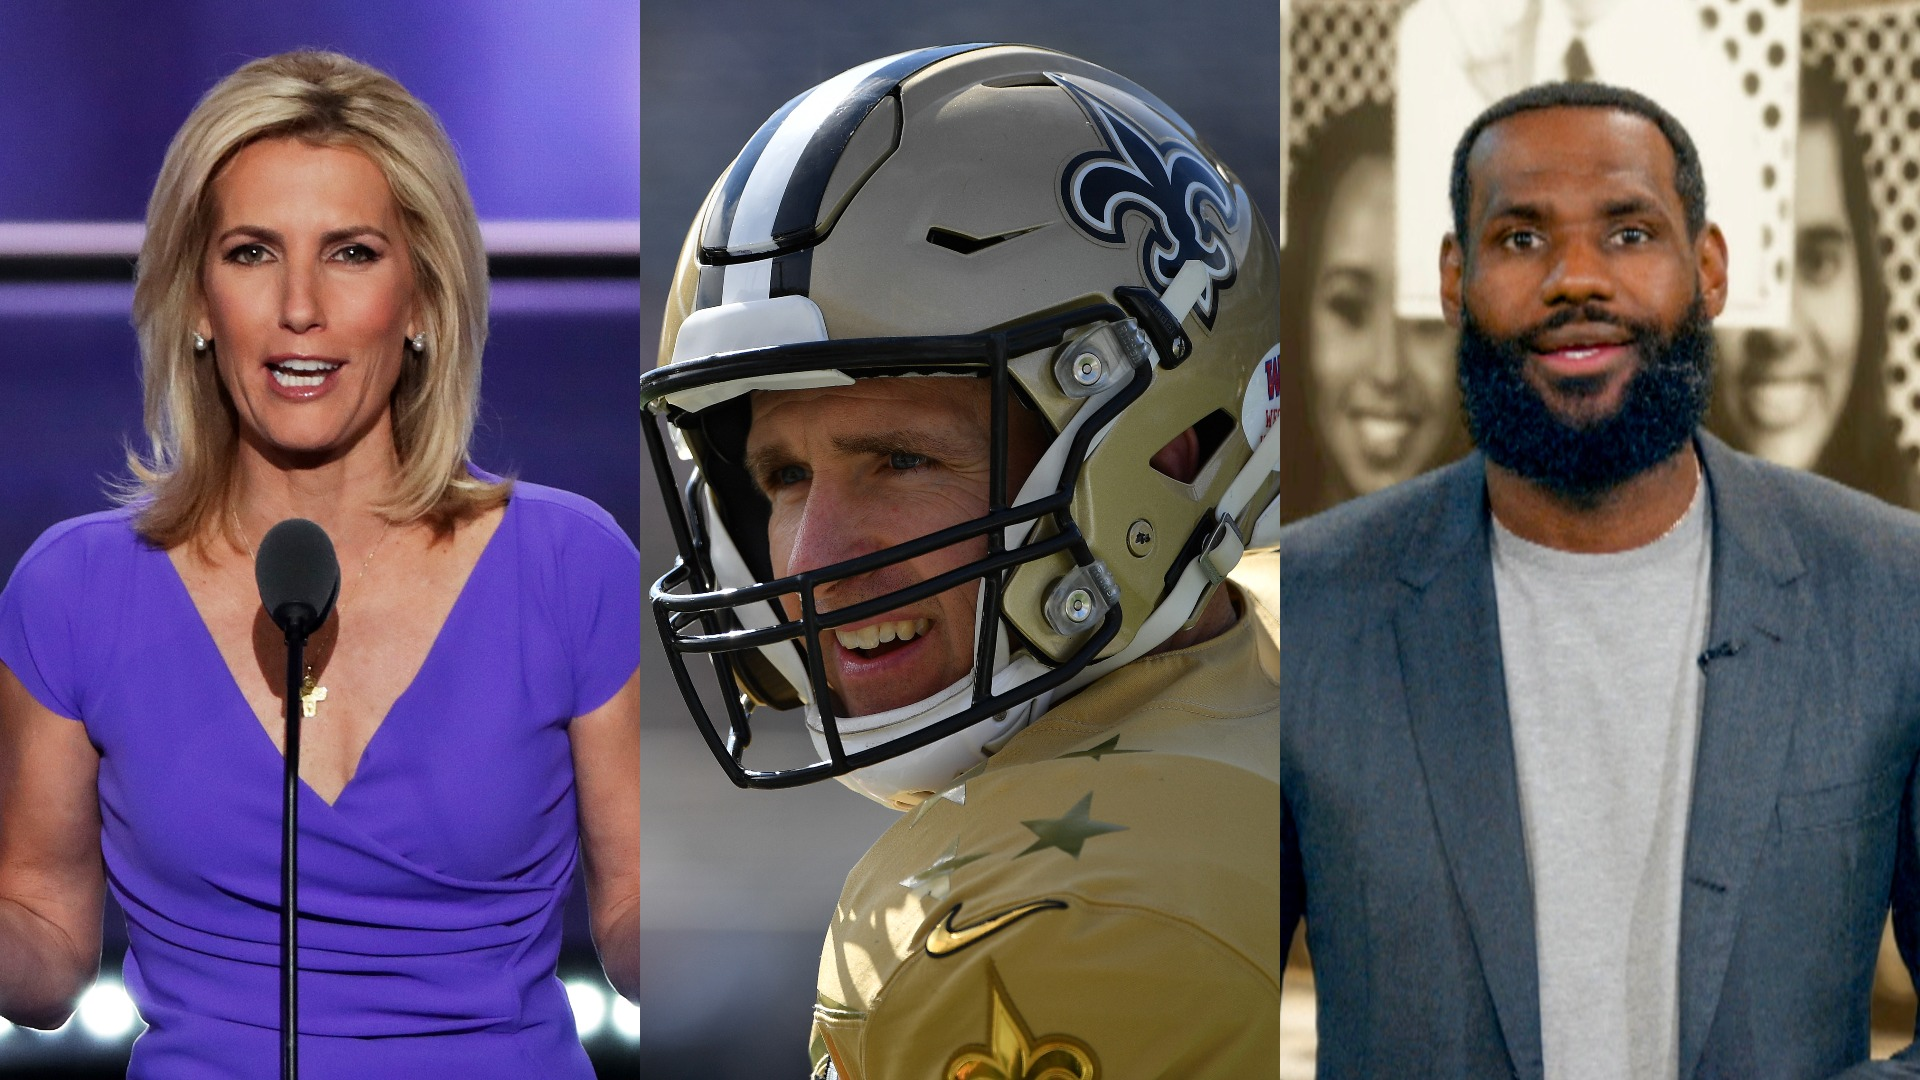 Fox host Laura Ingraham called out for different responses to Drew Brees than LeBron James - TheGrio